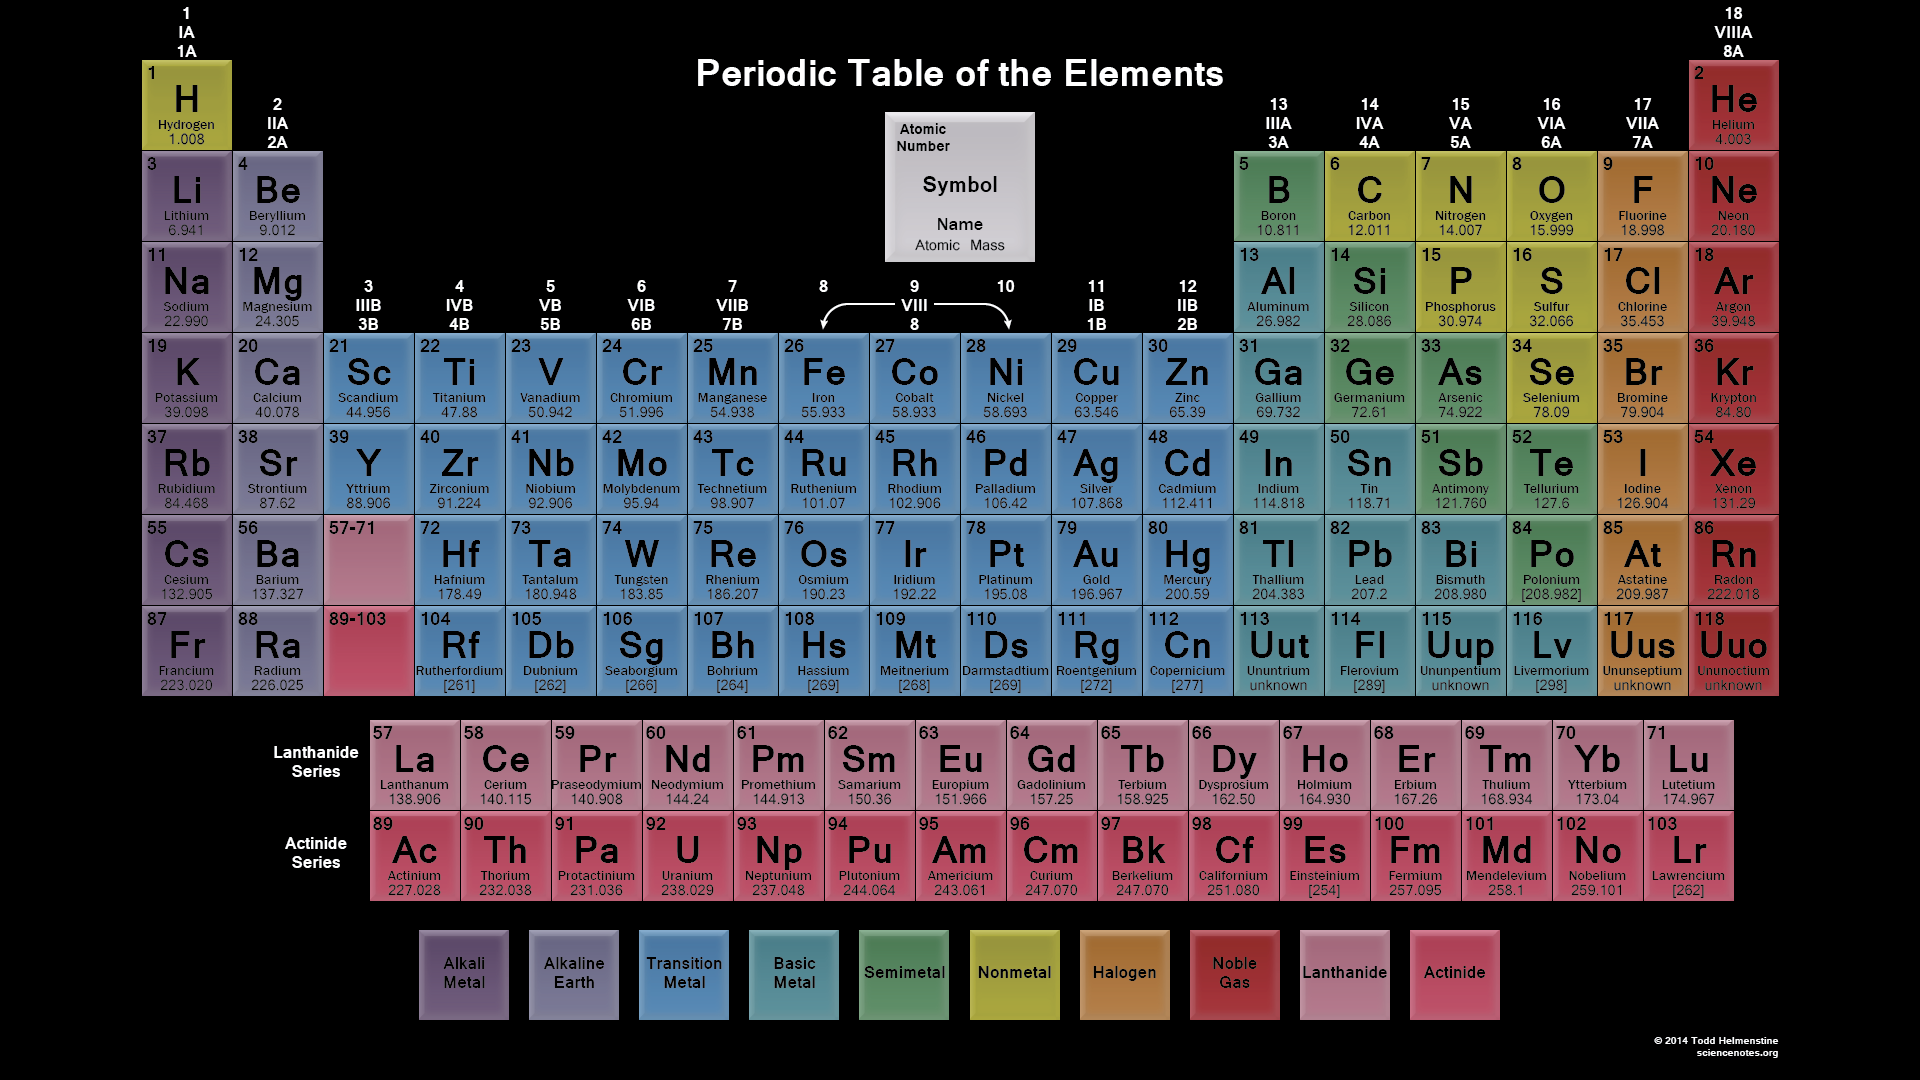 Periodic tables of the elements in american english - Periodic table of elements html ...